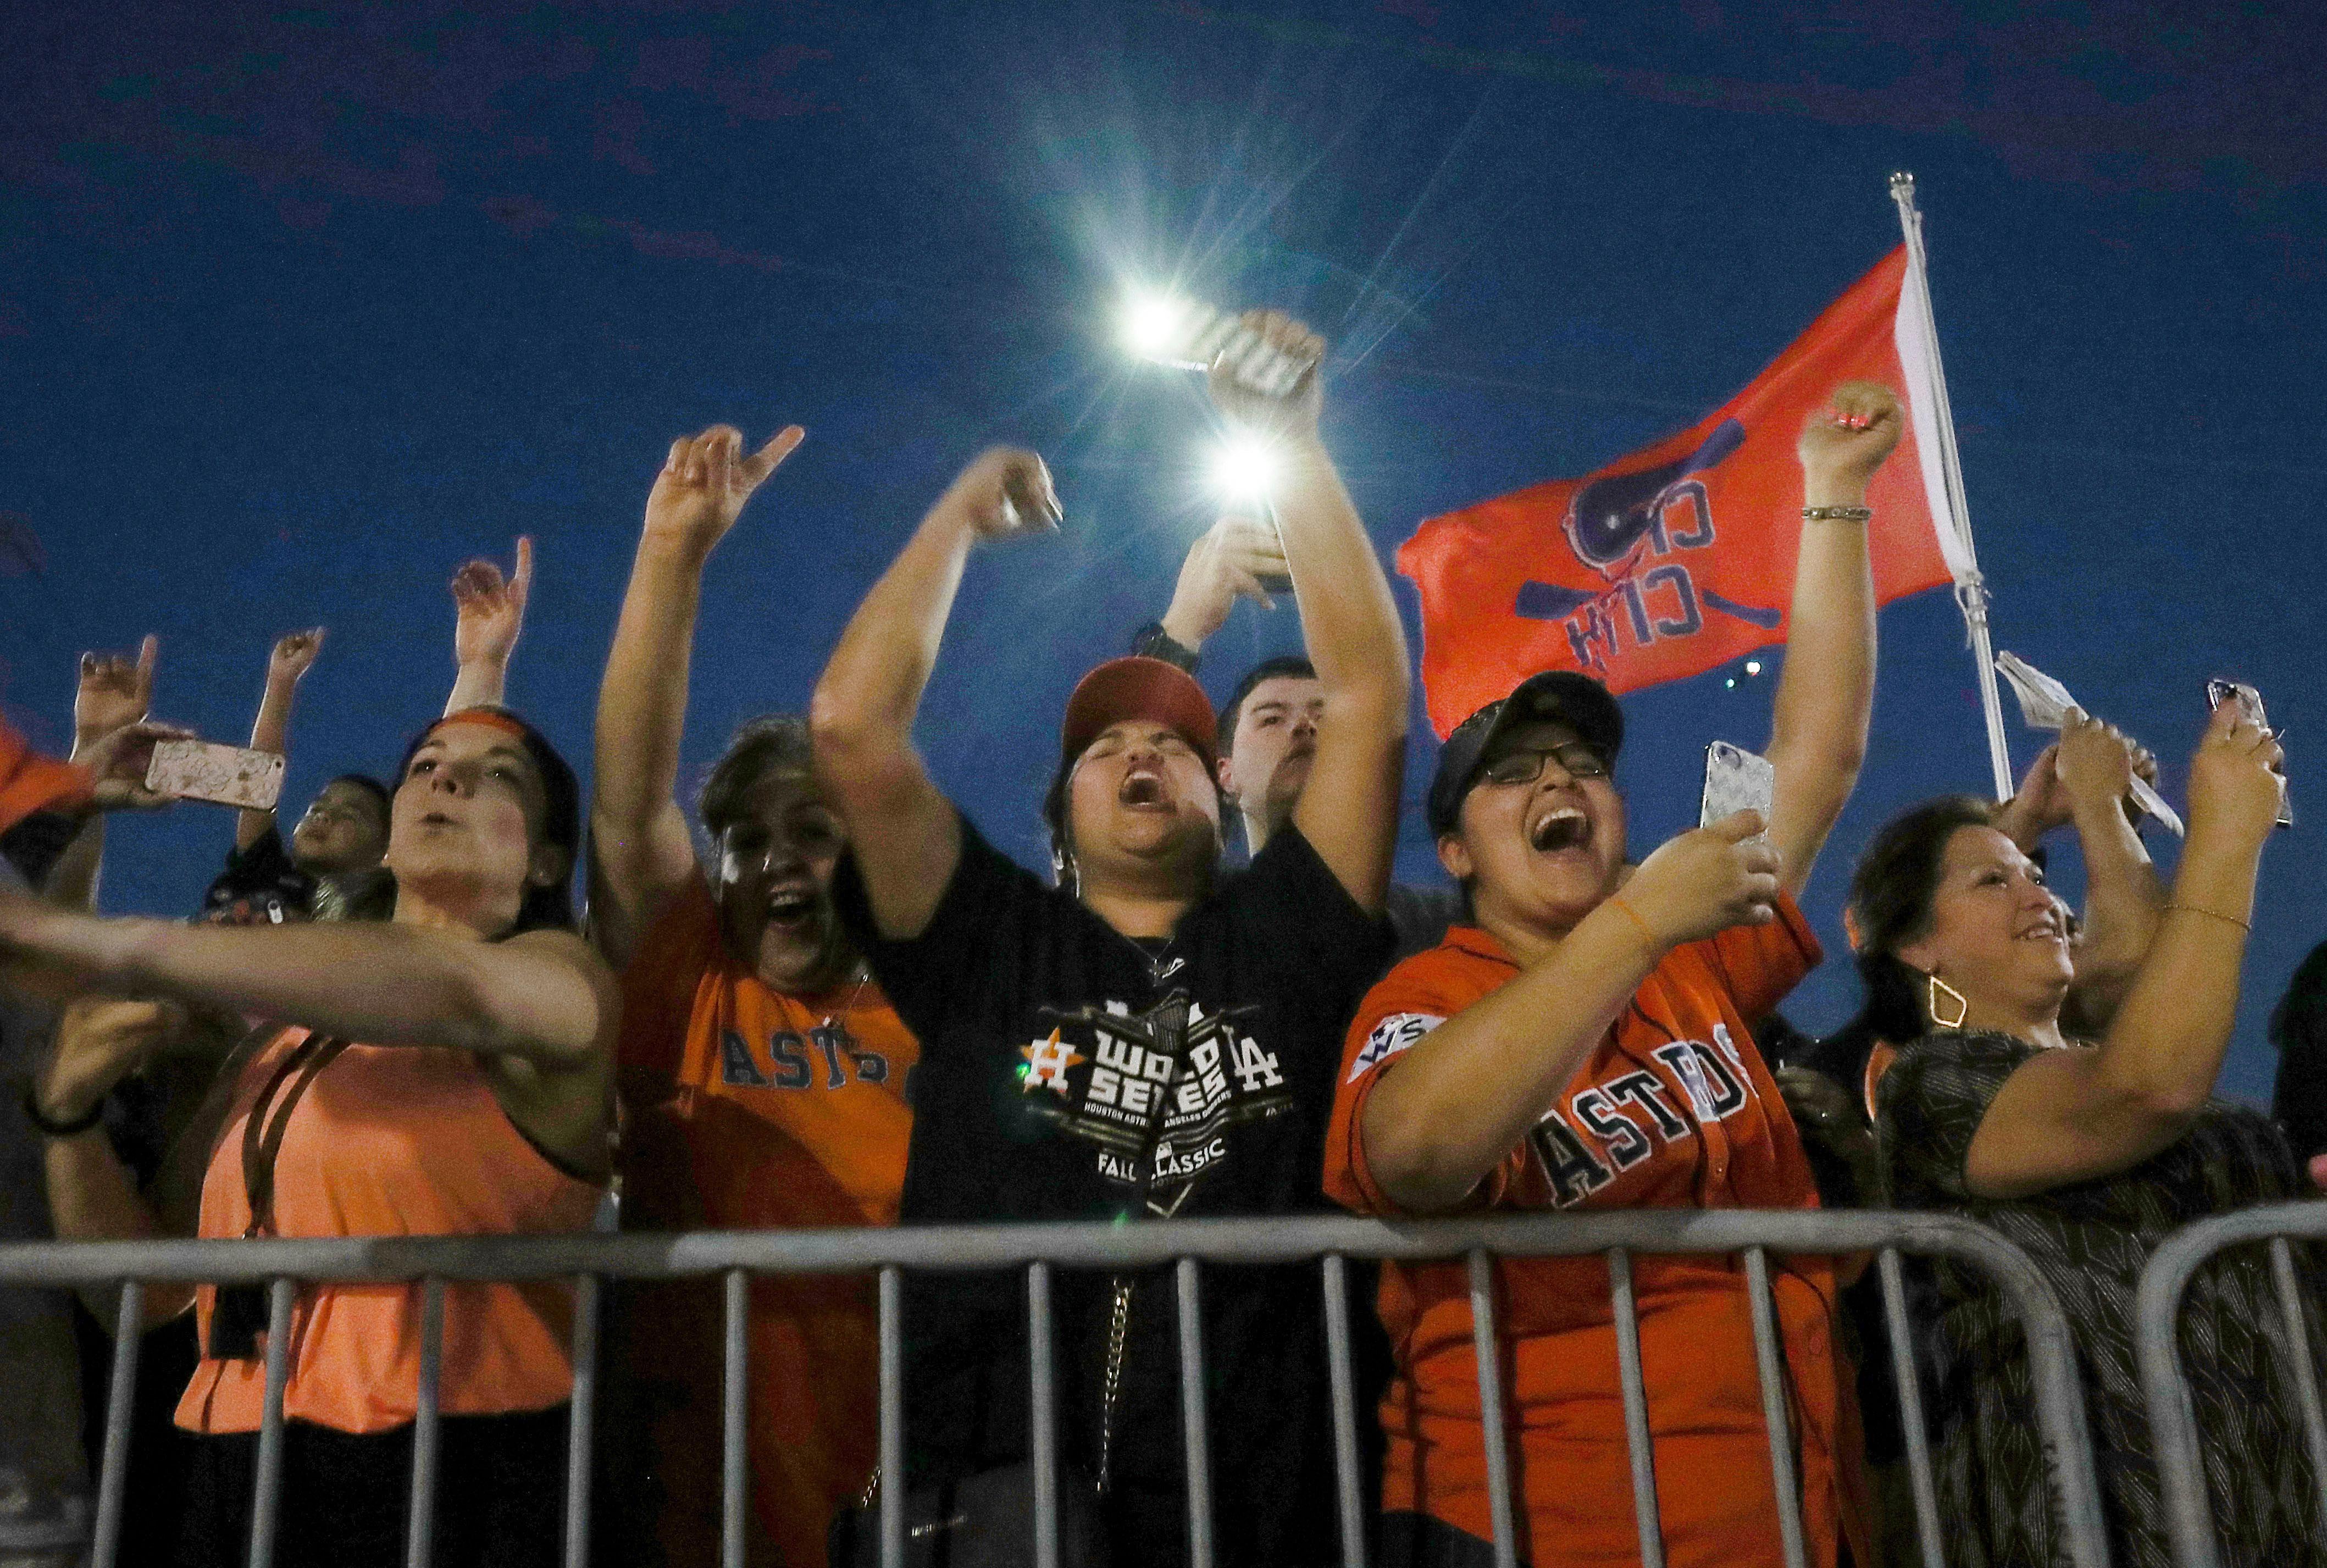 Fans cheer as the Houston Astros return to Minute Maid Park after winning the 2017 World Series, Thursday, Nov. 2, 2017, in Houston. (Jon Shapley/Houston Chronicle via AP)